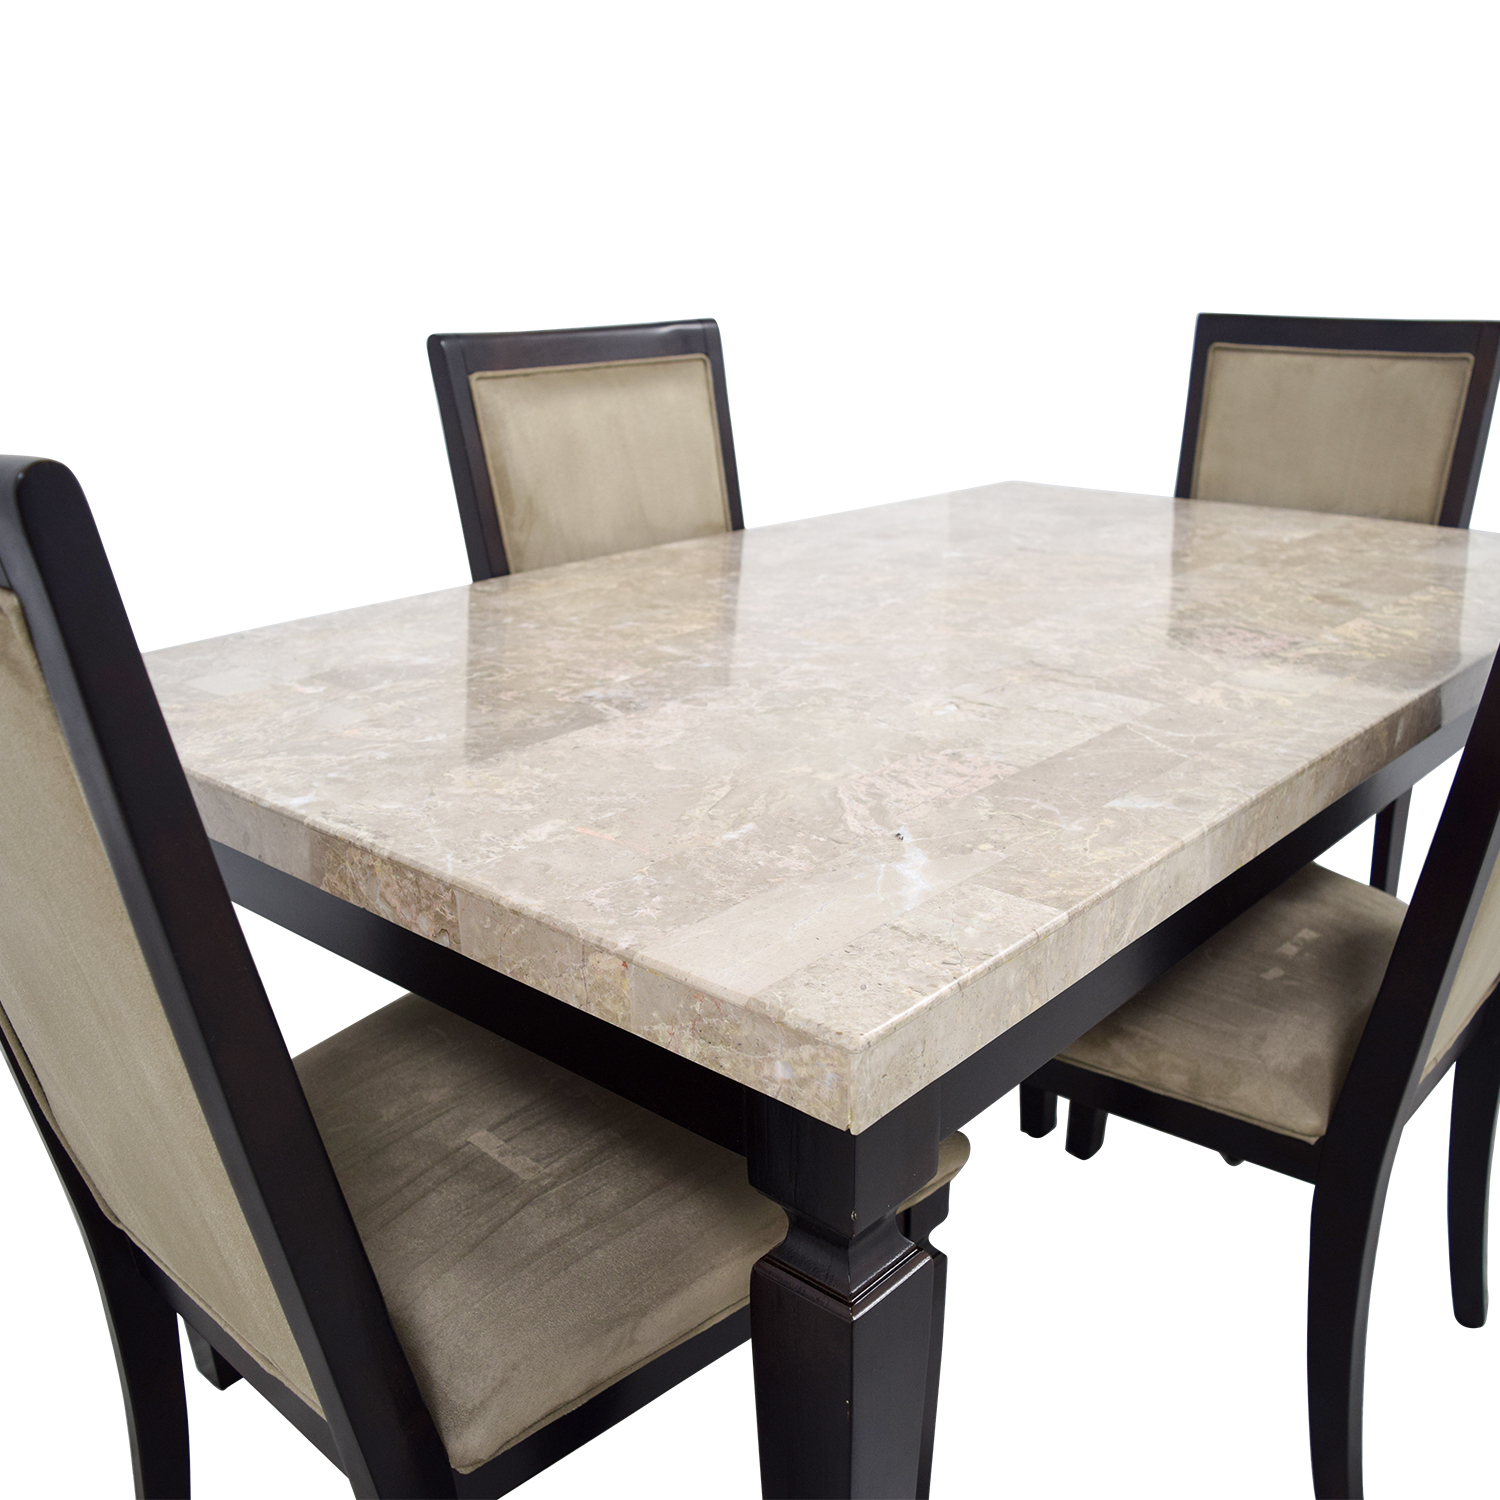 5% OFF - Raymour & Flanigan Raymour & Flanigan Rogue Marble Dining Set /  Tables